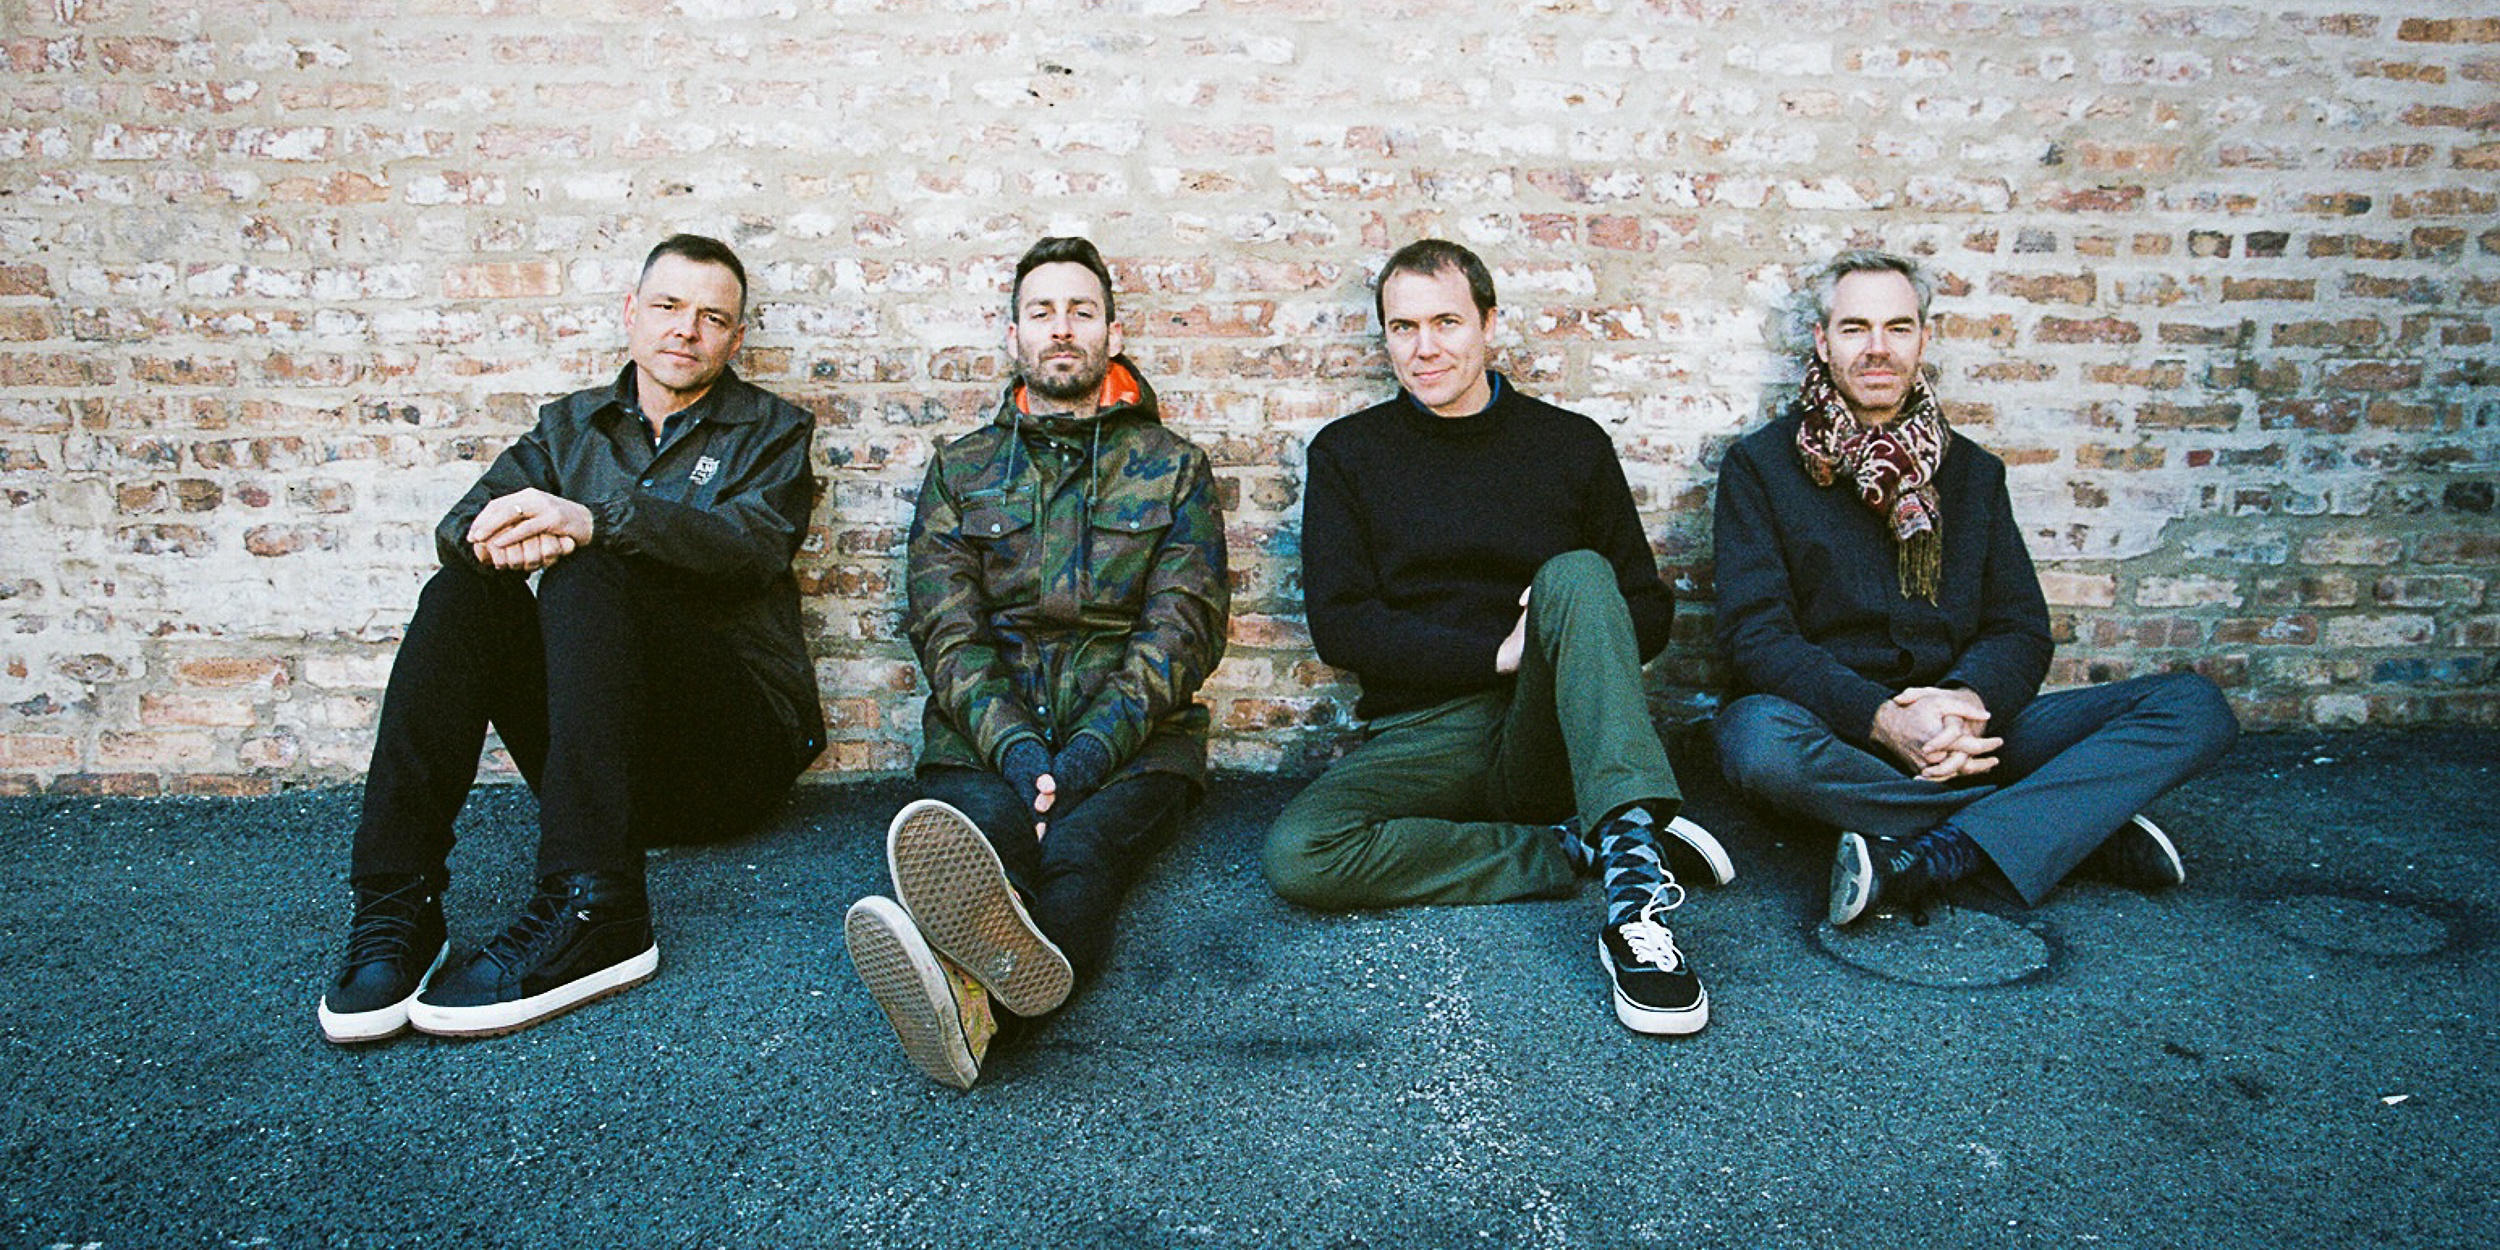 American Football Live in Manila: Here's what you need to know